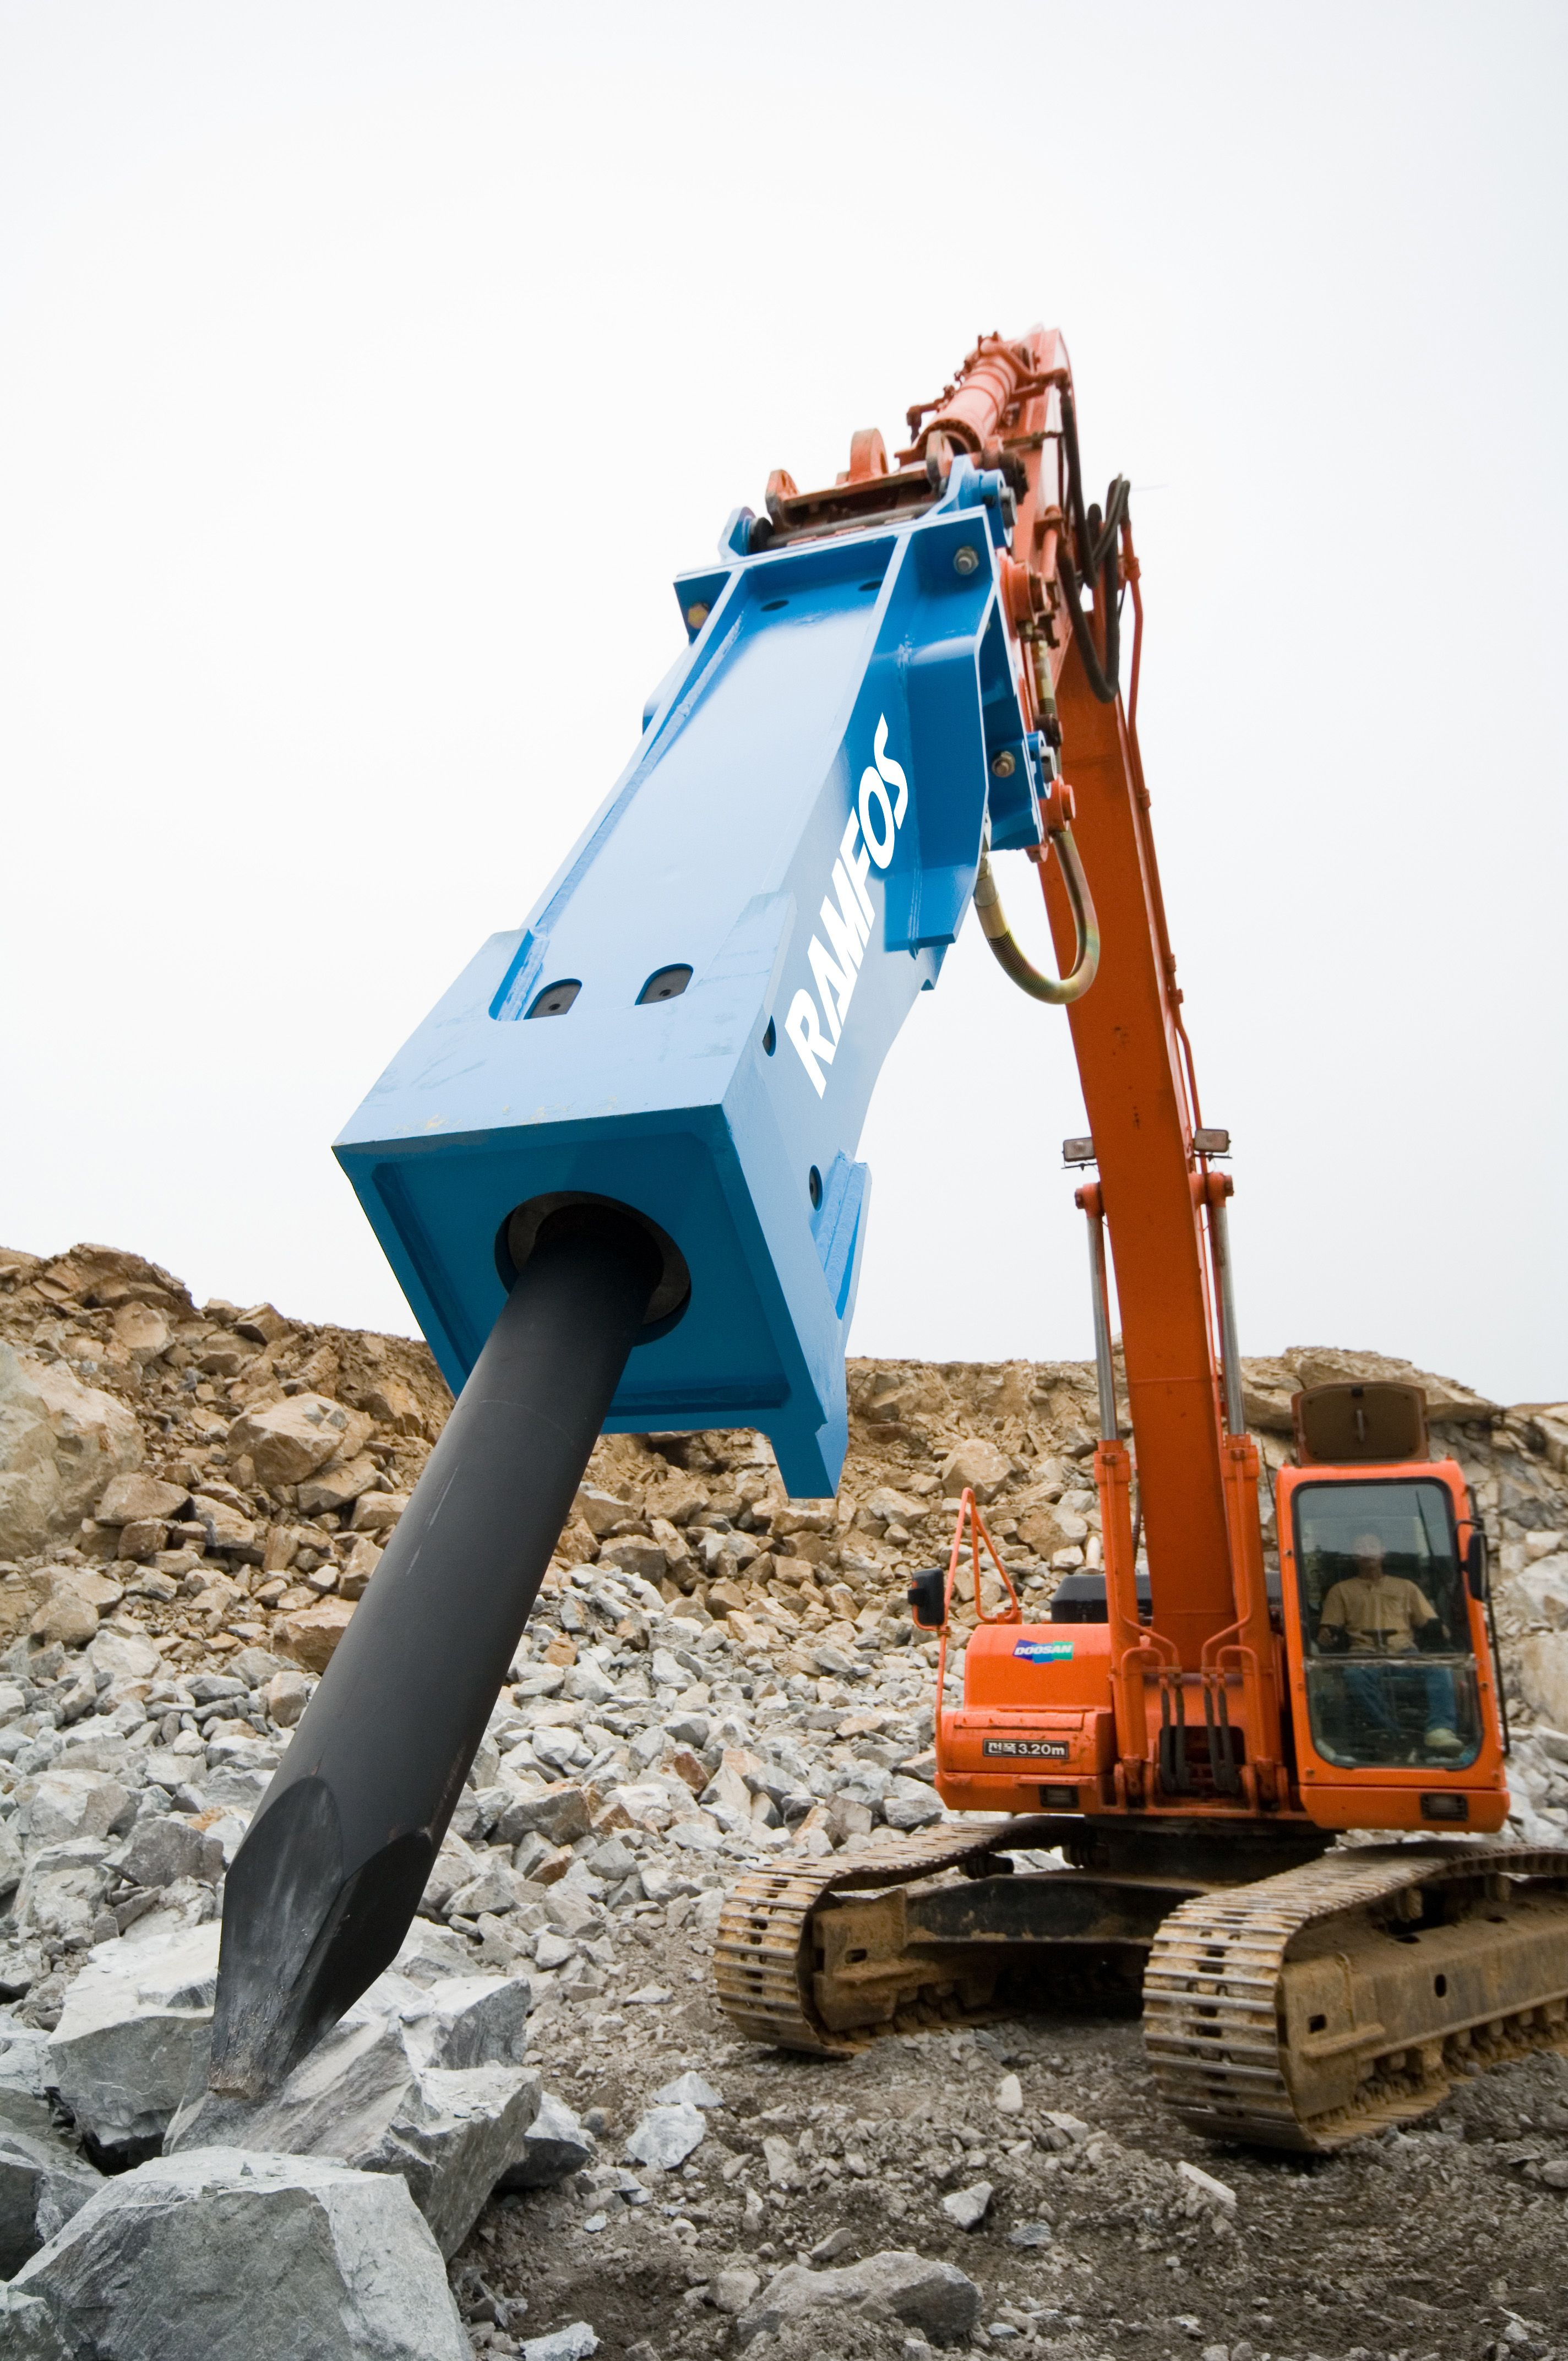 Ramfos TF-3 breaker on Doosan excavator